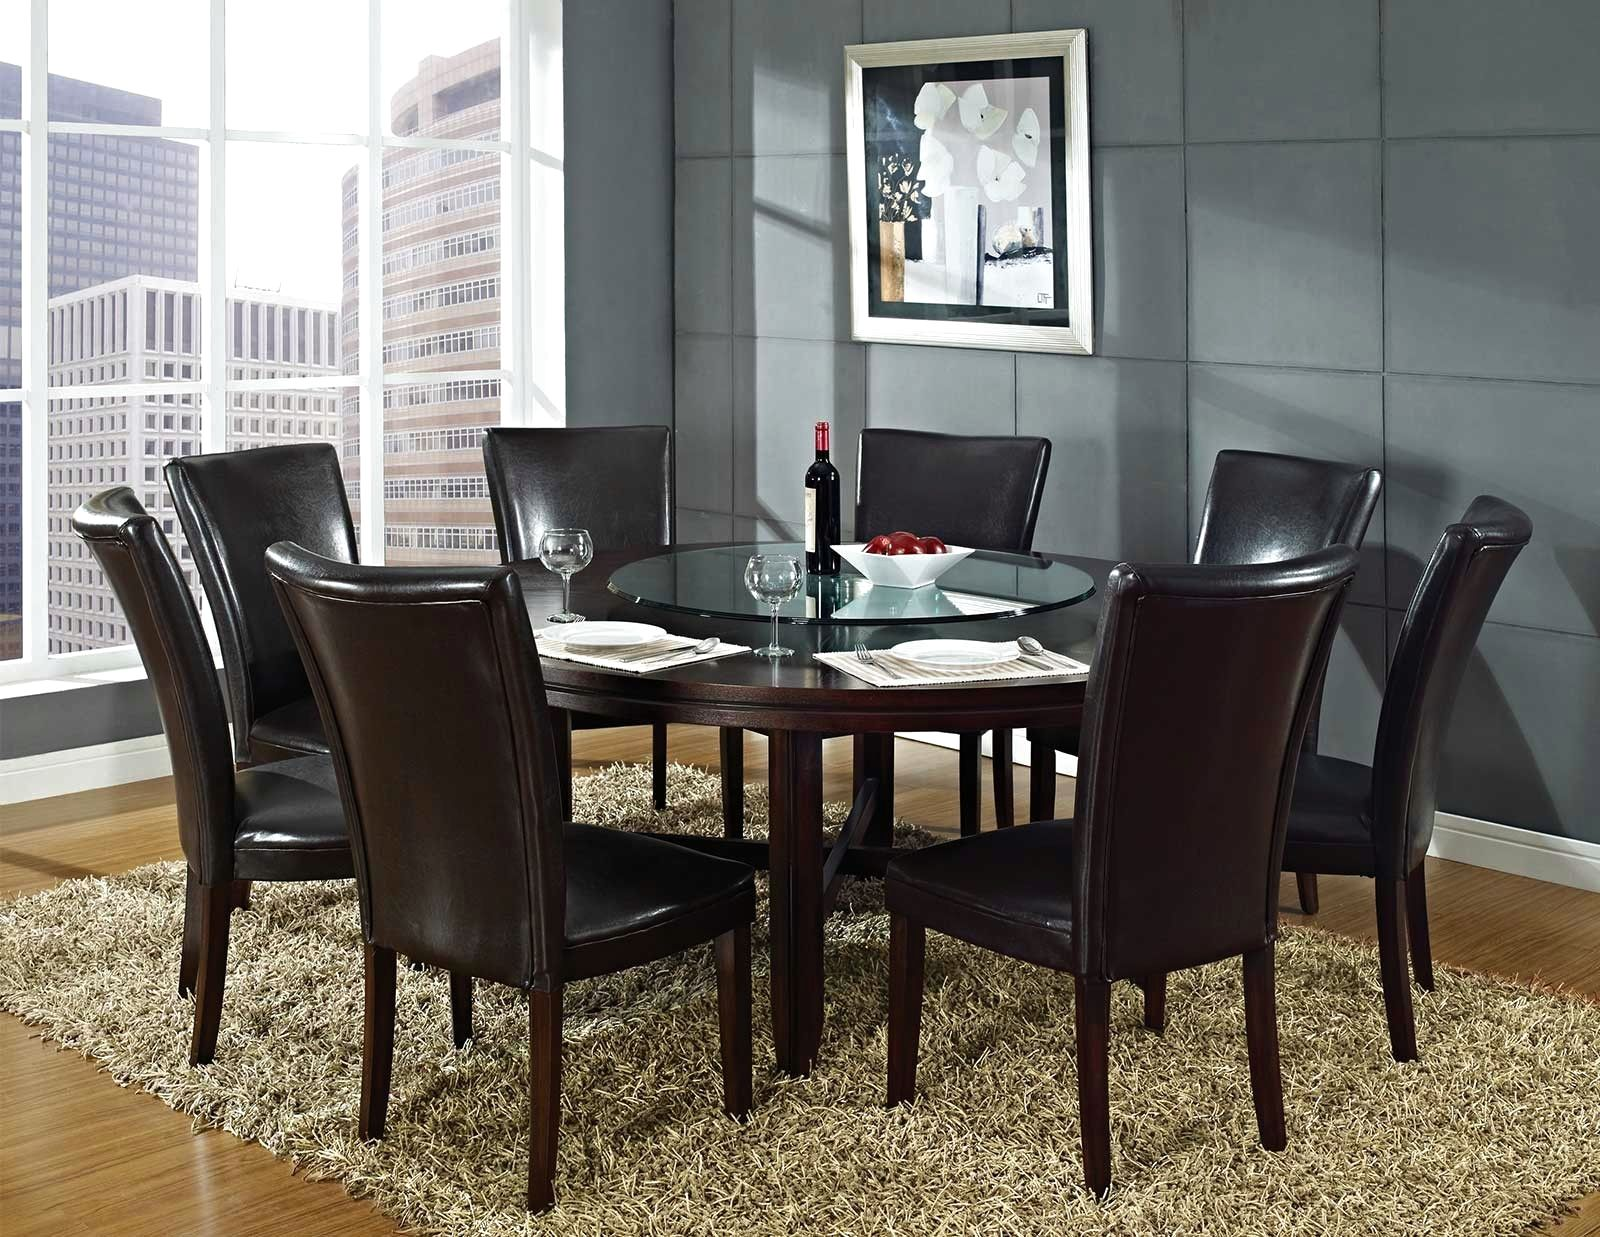 Formal round dining table for 6 completing cozy dining room with dark leather chairs on grey